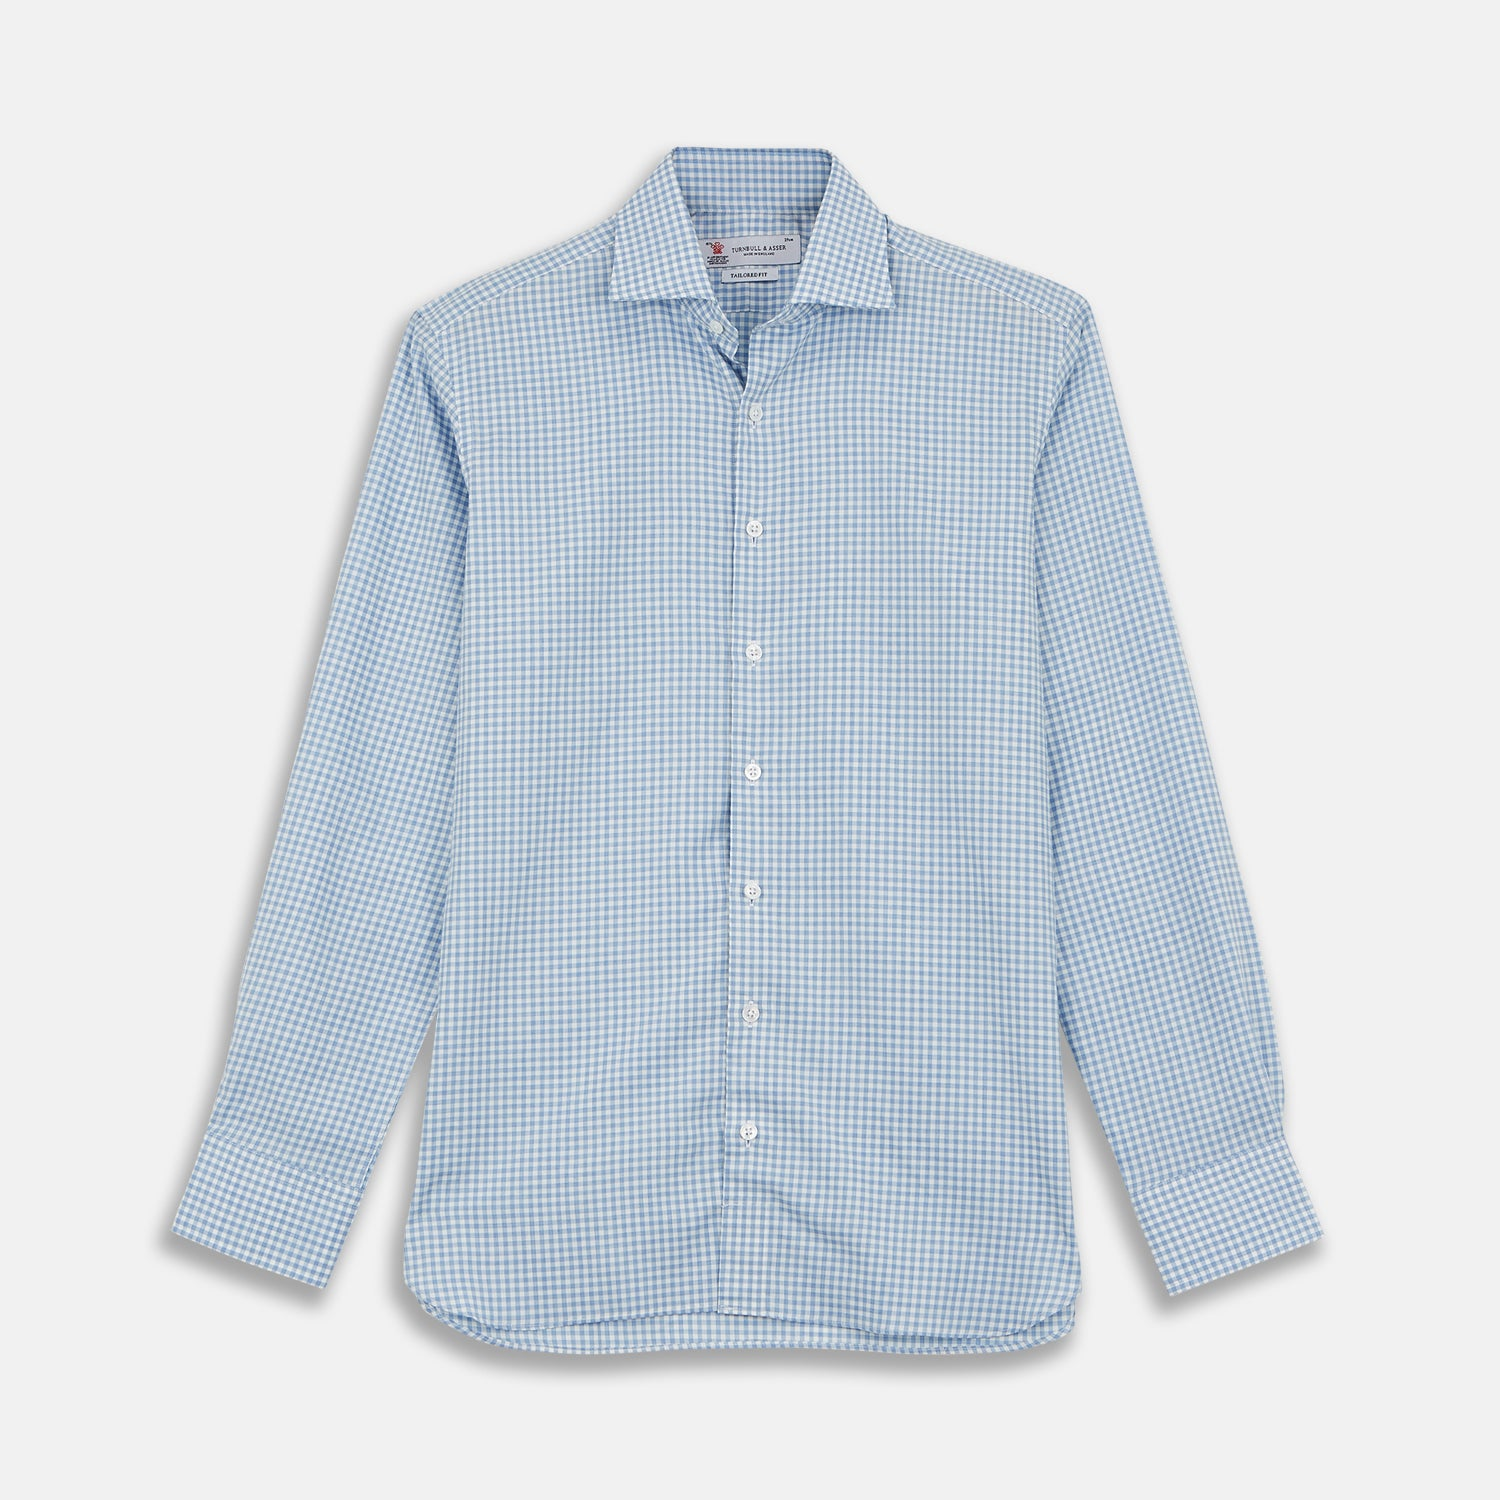 Tailored Fit Light Blue Gingham Shirt with Kent Collar and 2-Button Cuffs